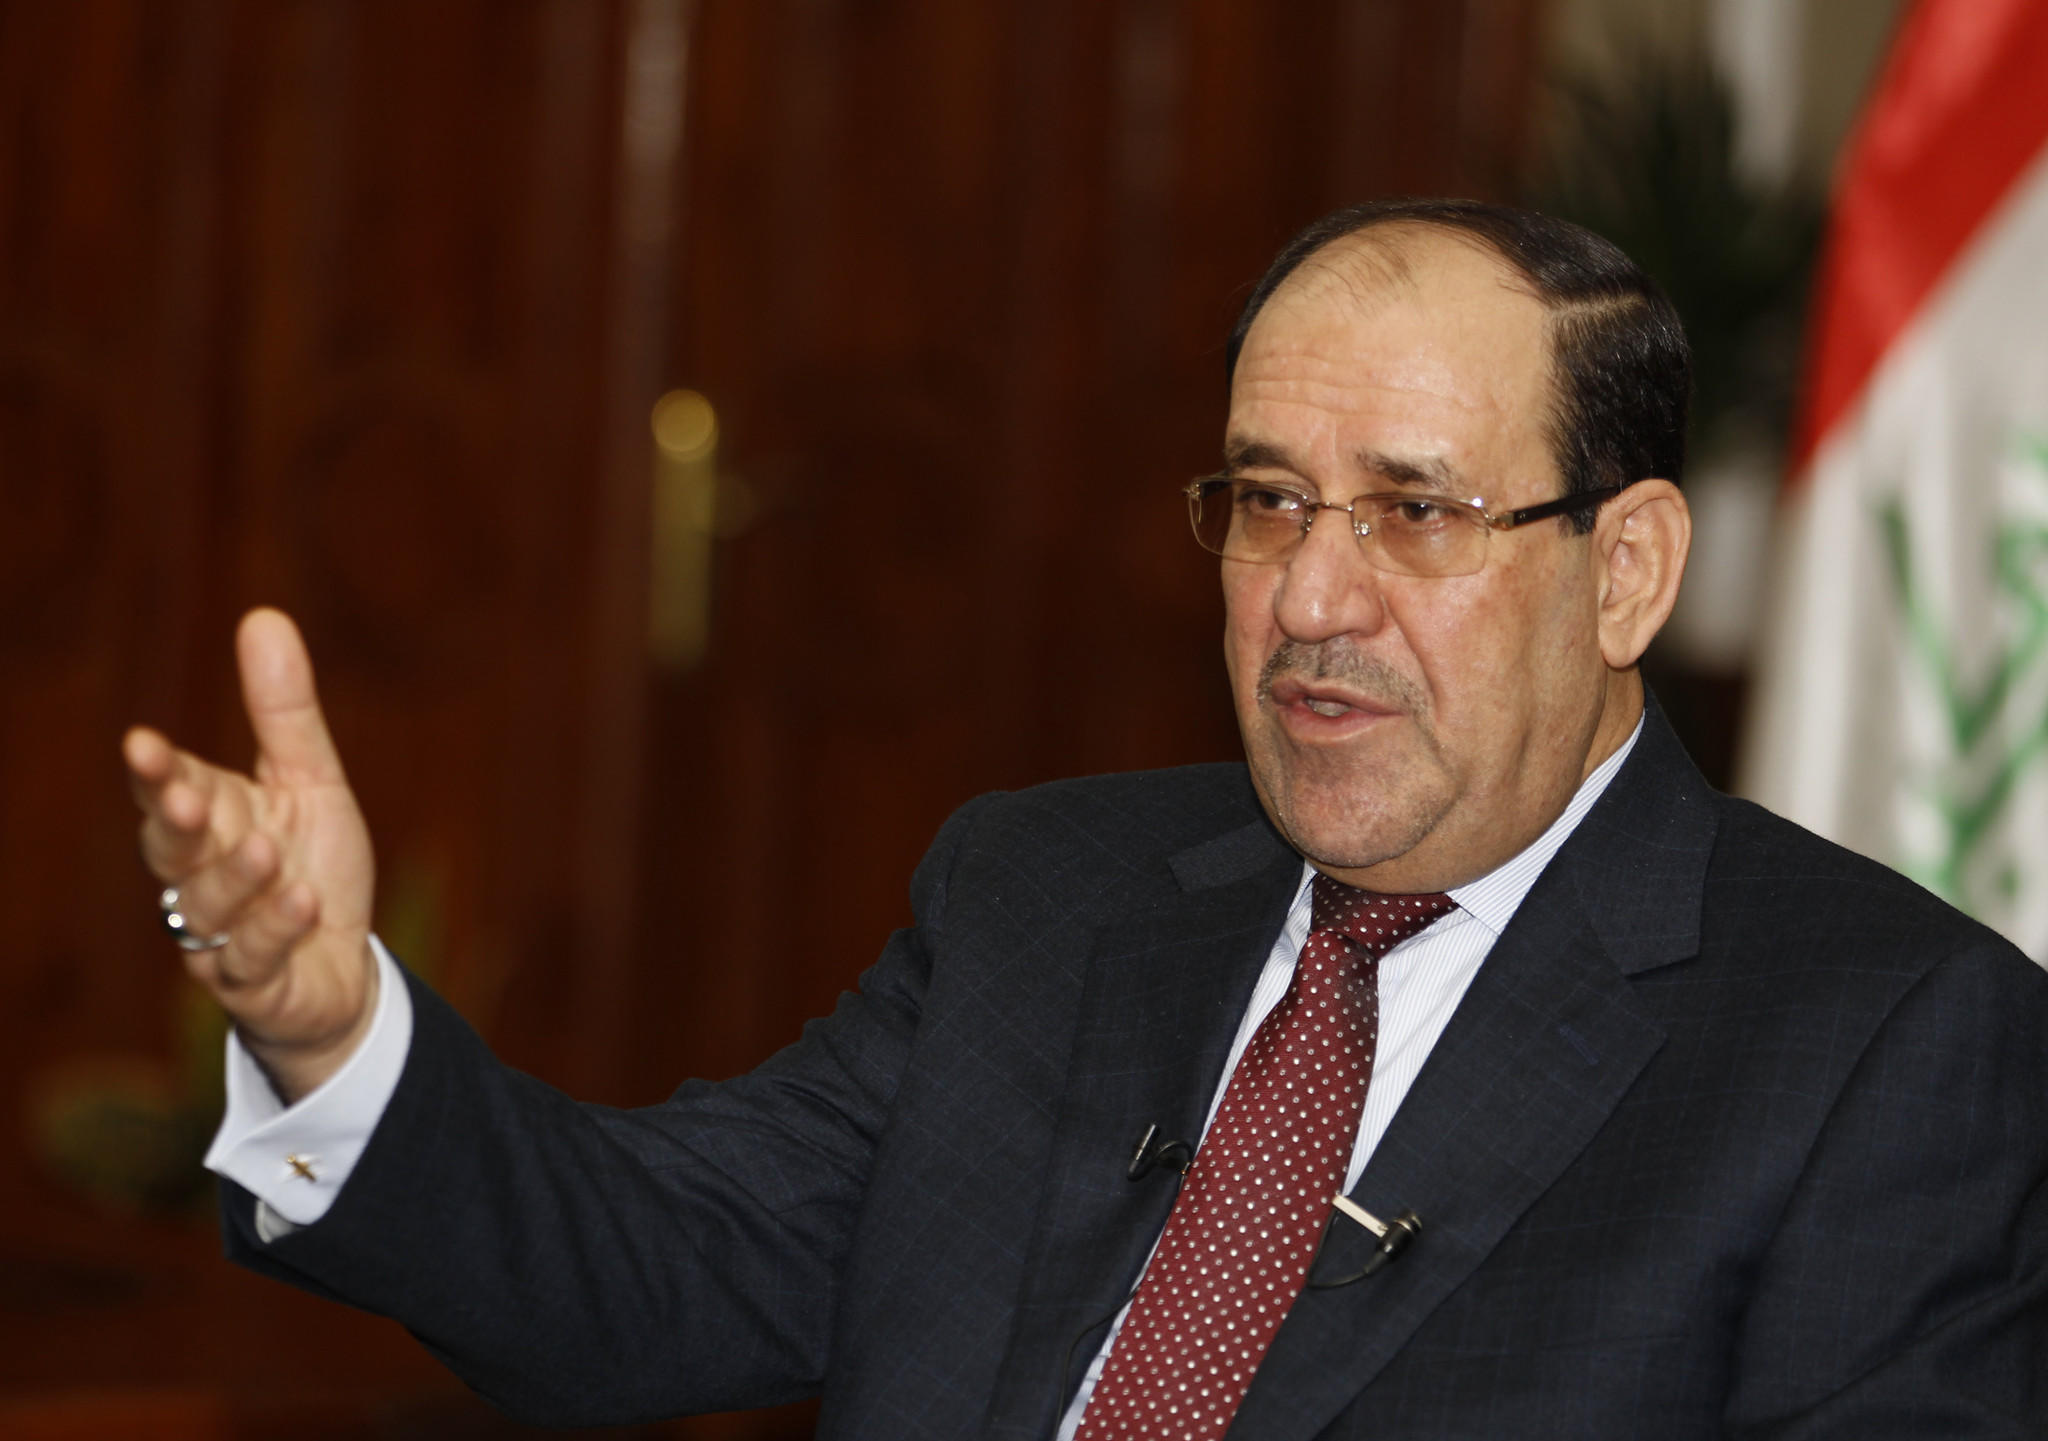 Iraq's Prime Minister Nuri al-Maliki speaks during an interview with Reuters in Baghdad January 12.